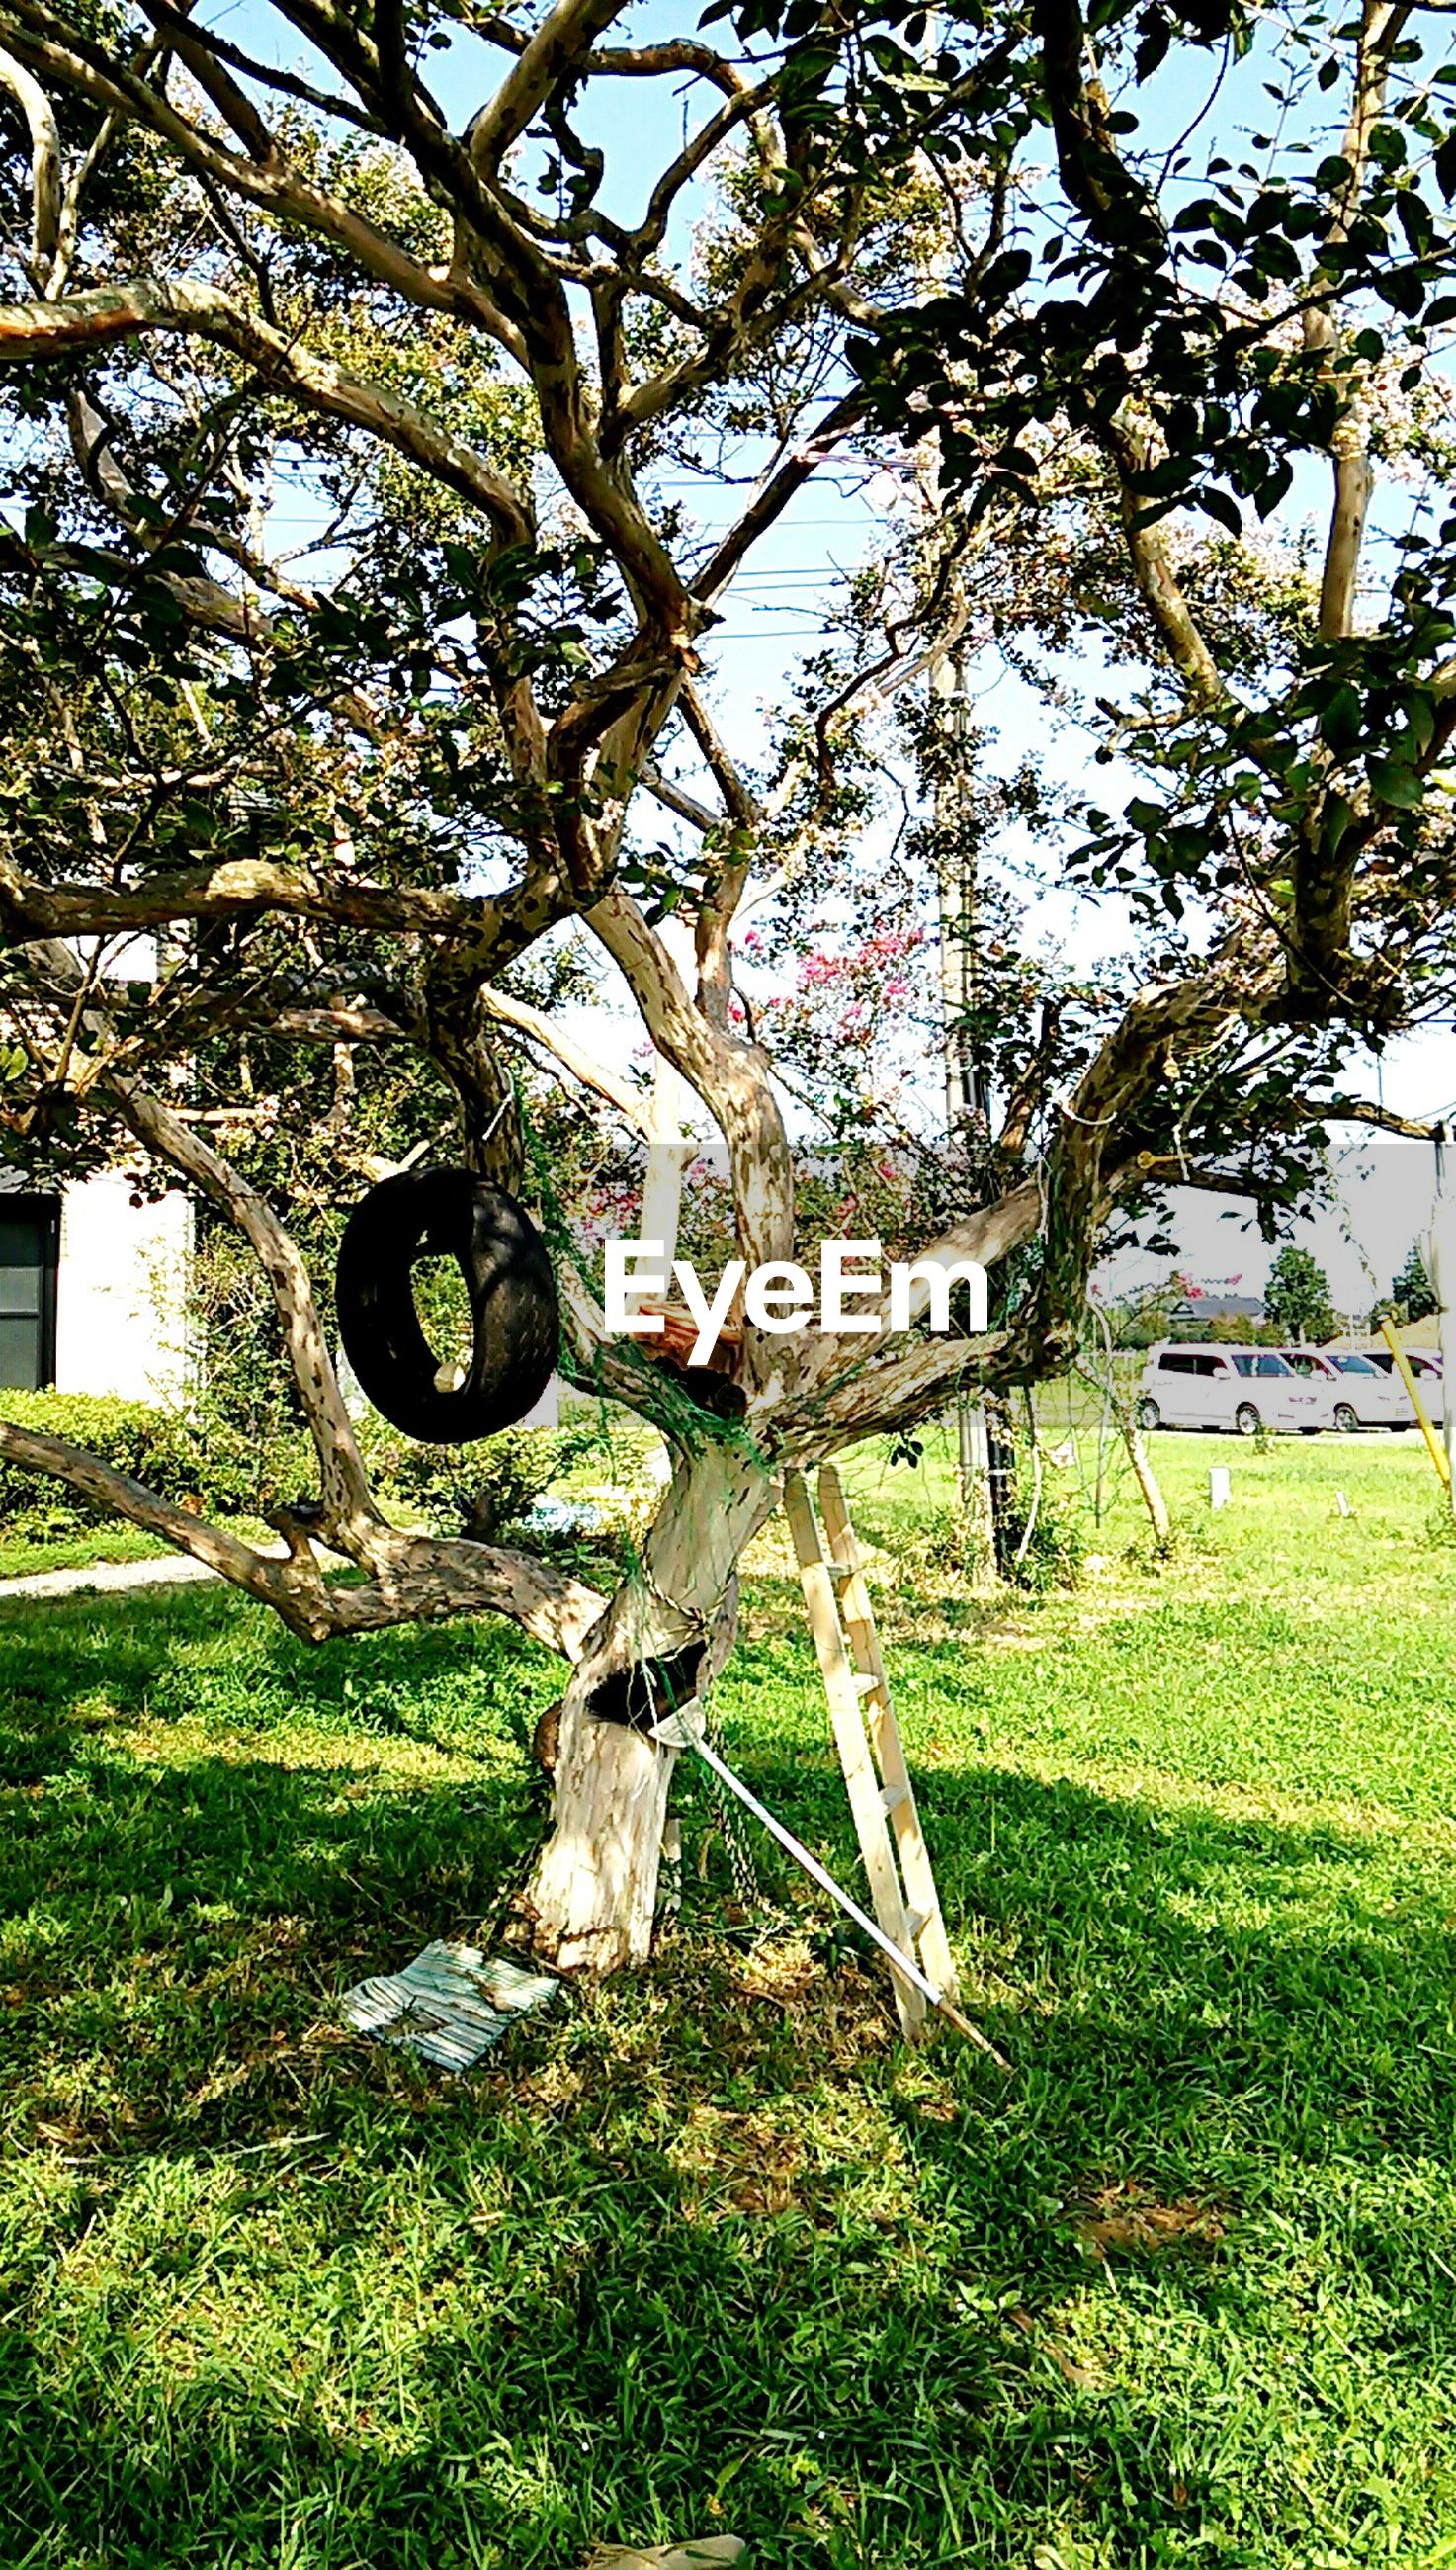 grass, tree, built structure, building exterior, lawn, architecture, field, grassy, green color, branch, park - man made space, growth, tree trunk, tombstone, day, sunlight, bare tree, cemetery, outdoors, abandoned